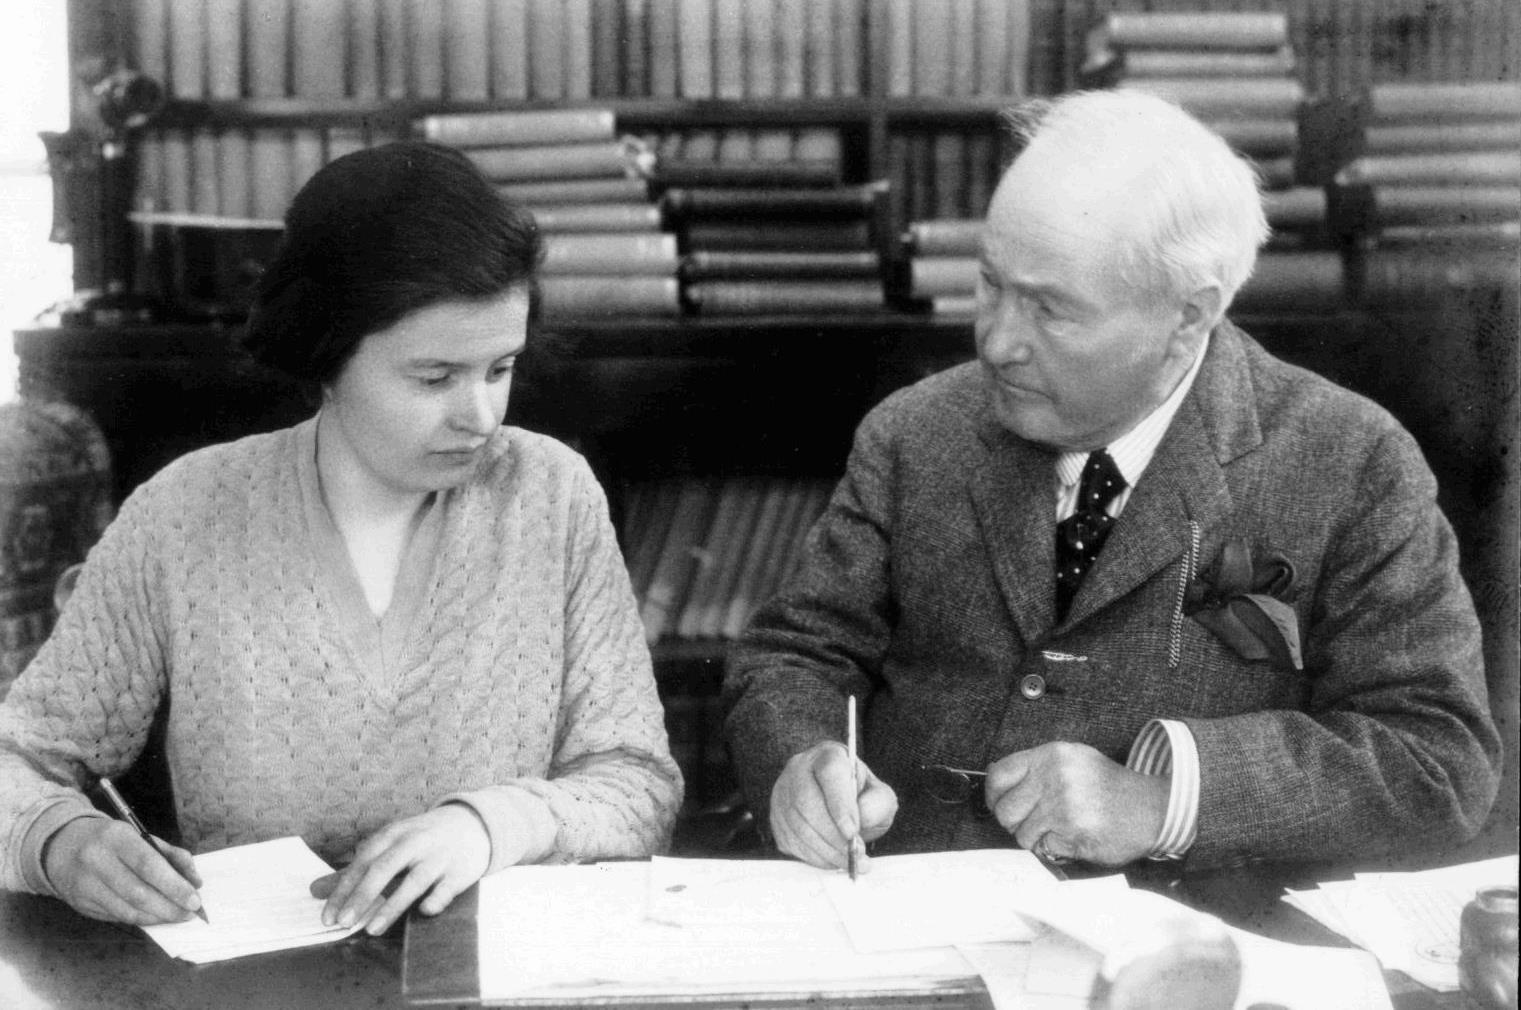 Agnes Baker with Arthur Preston at Whitefield in 1927